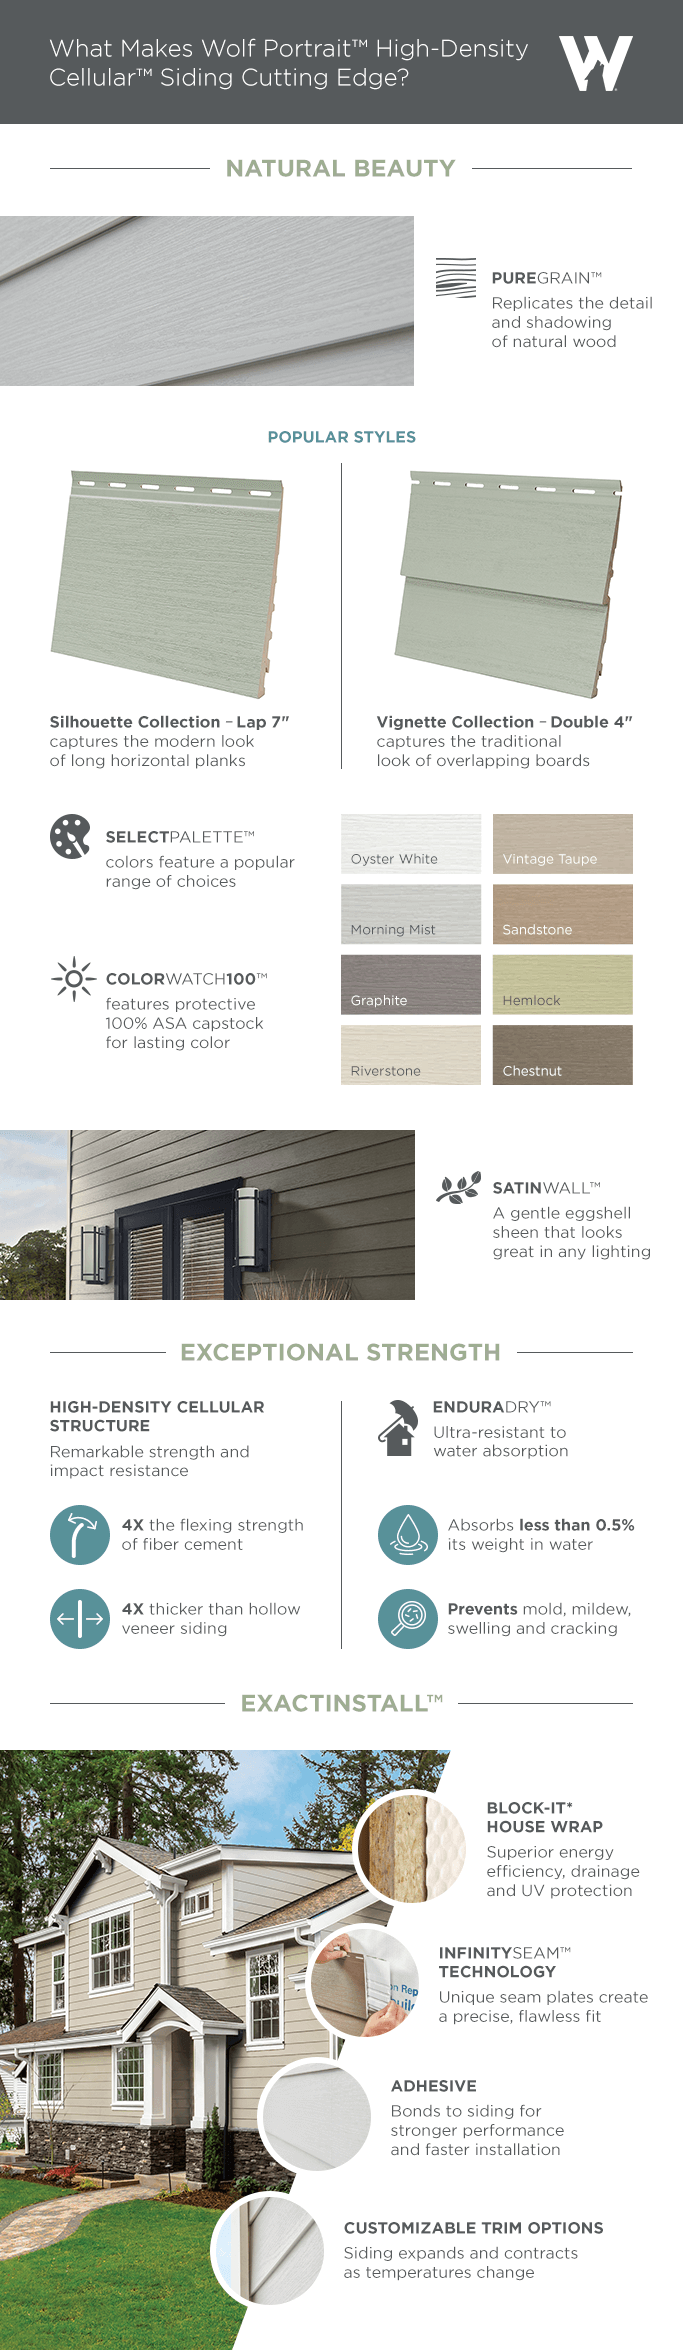 What Makes Wolf Portrait™ High-Density Cellular™ Siding Cutting Edge